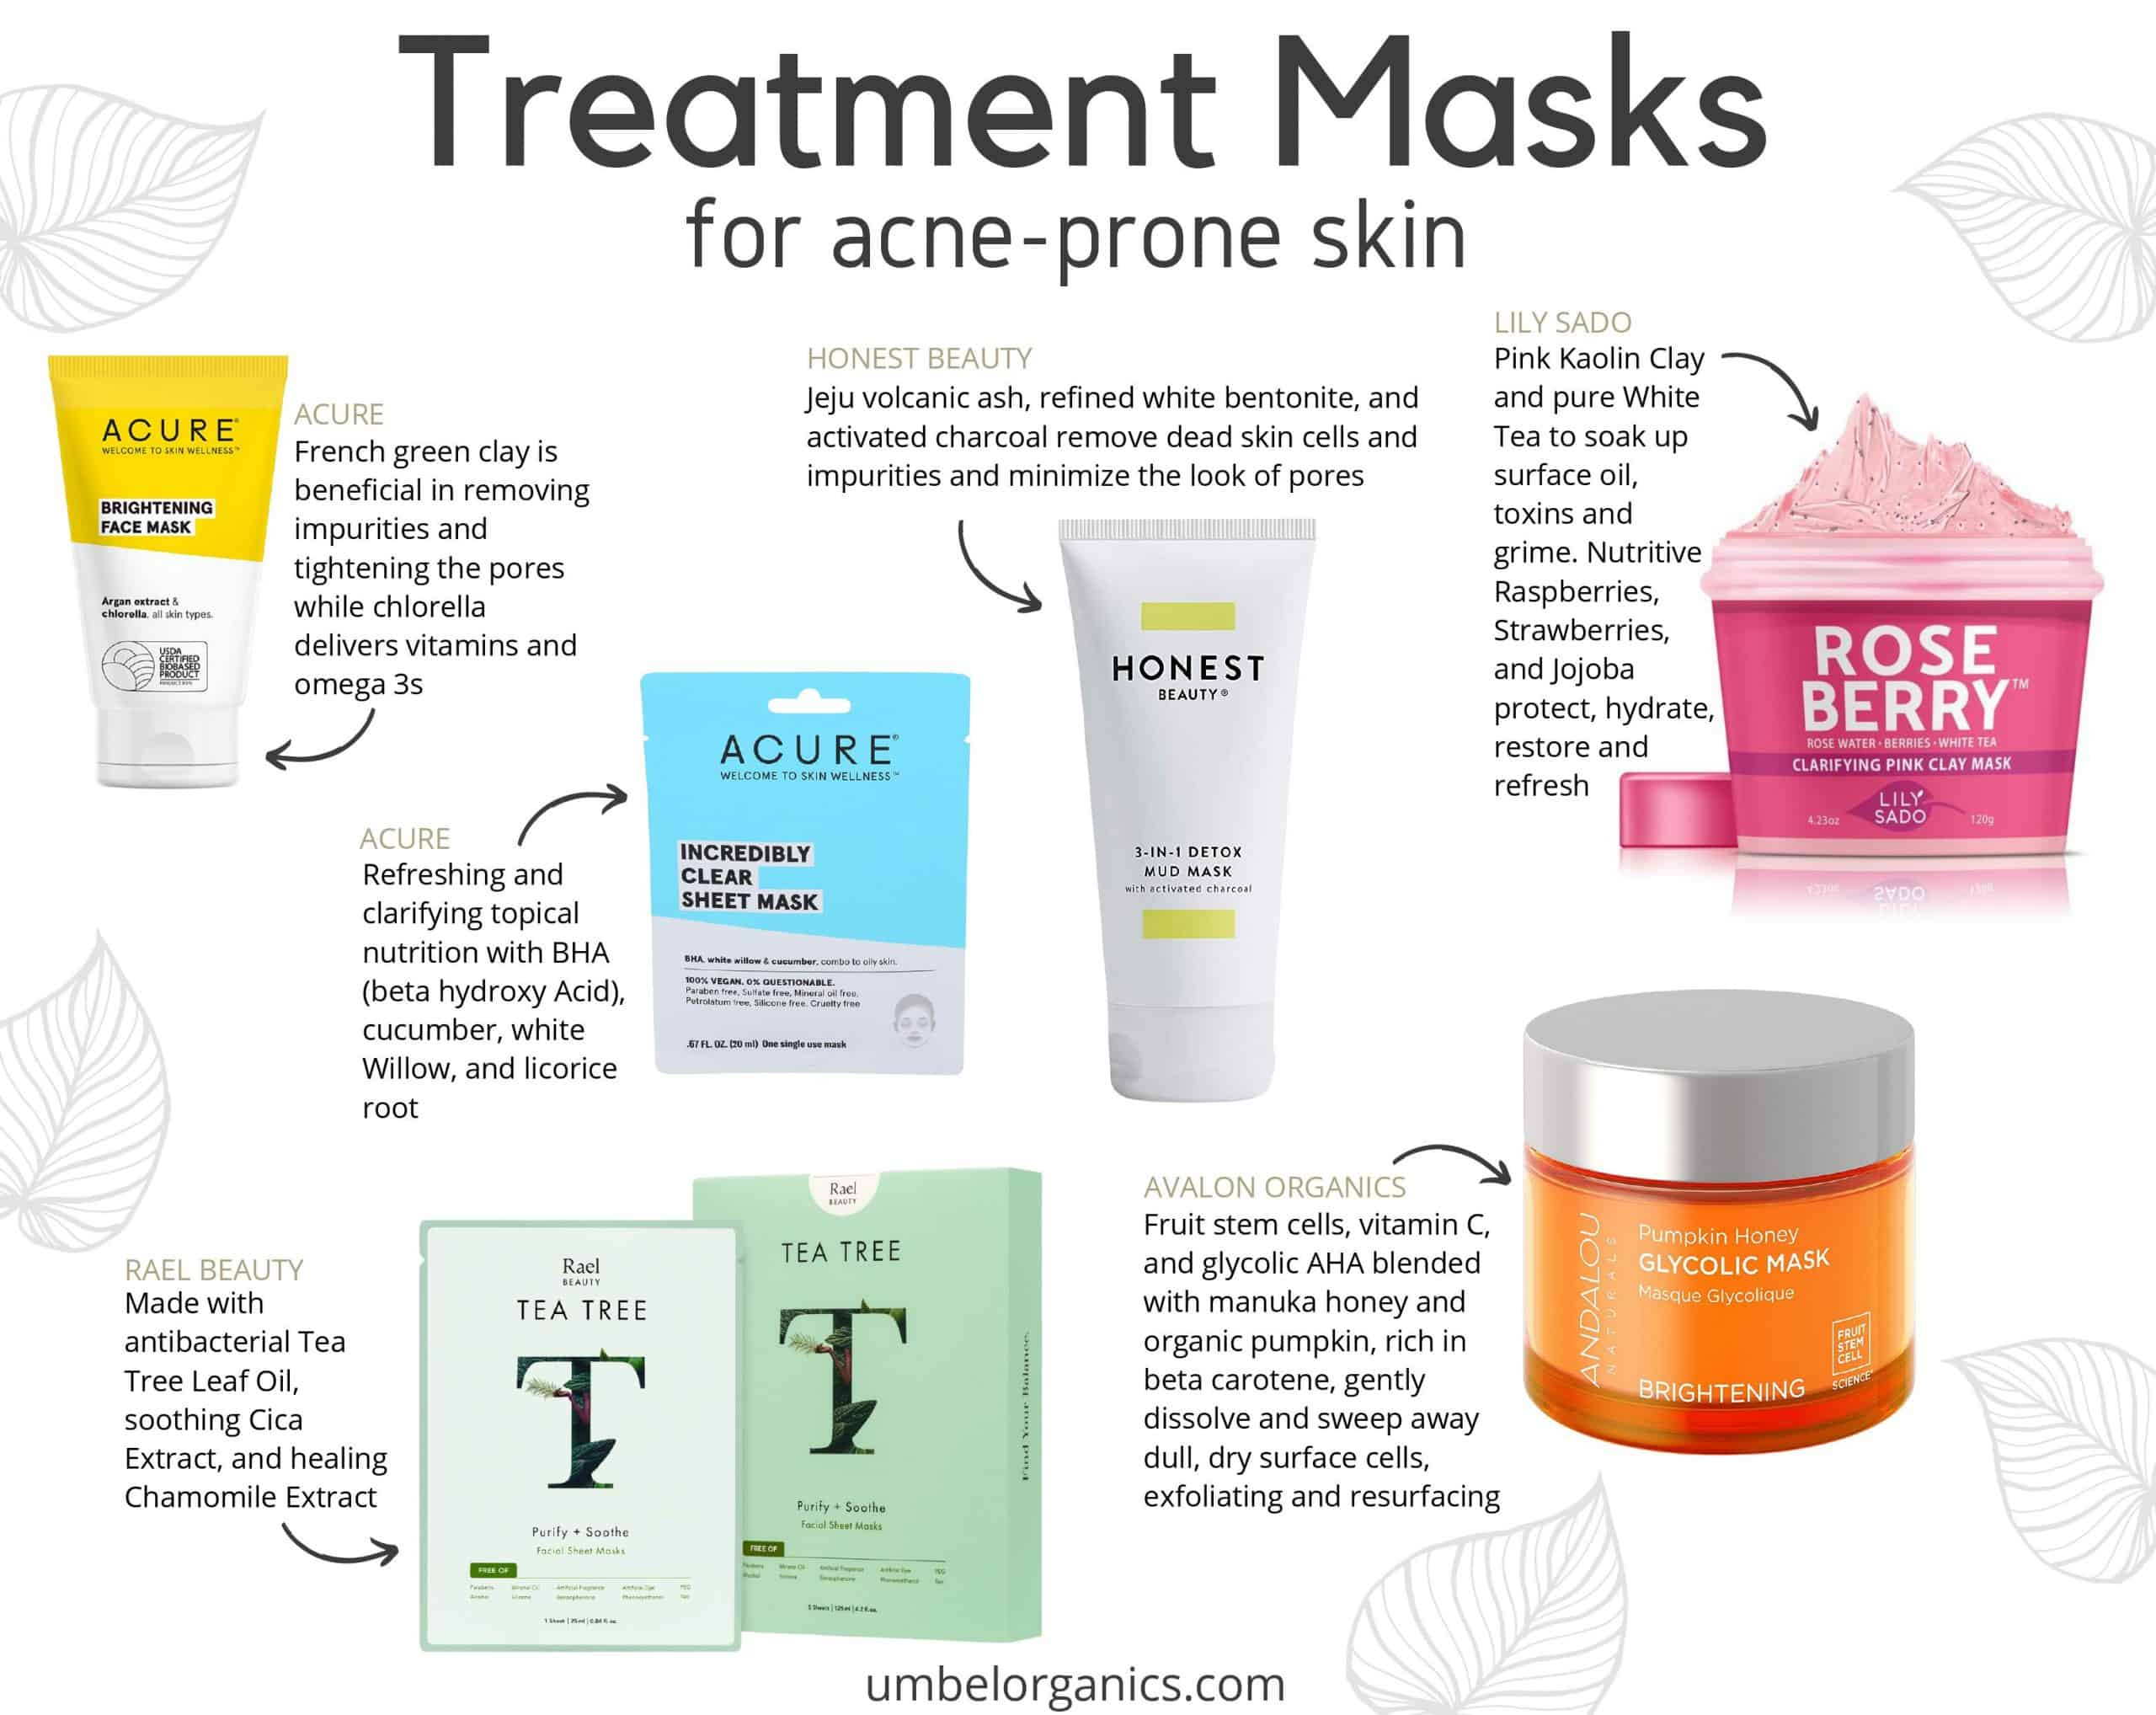 6 brands of affordable, clean treatment masks for acne-prone skin